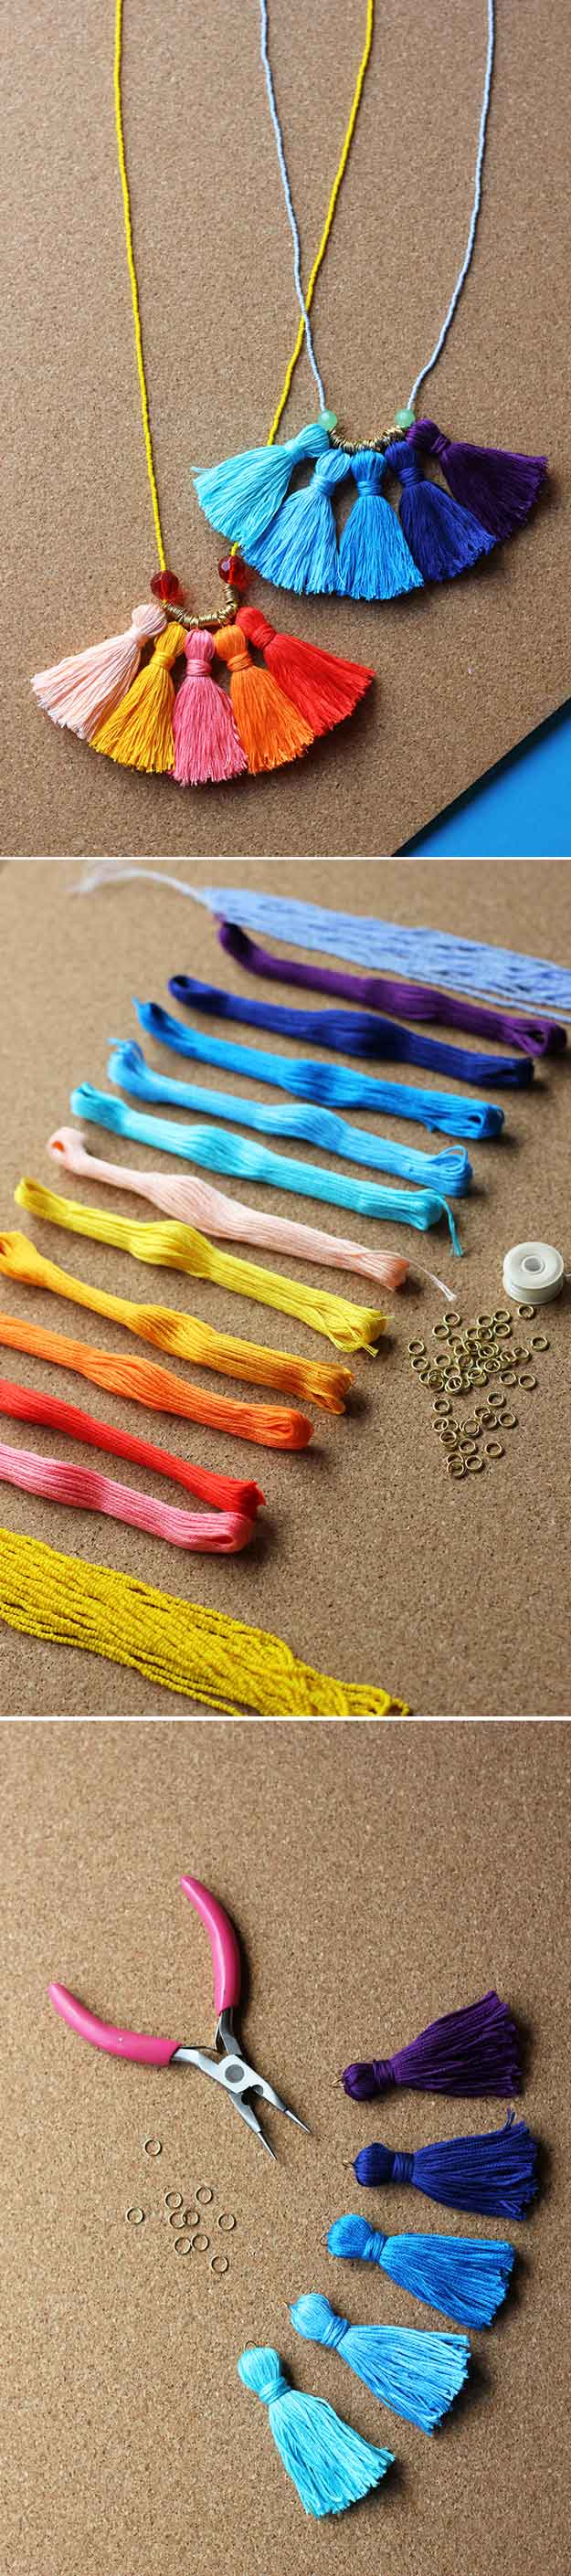 DIY Tassel Necklace   22 Cheap DIY Jewelry Projects for Girls